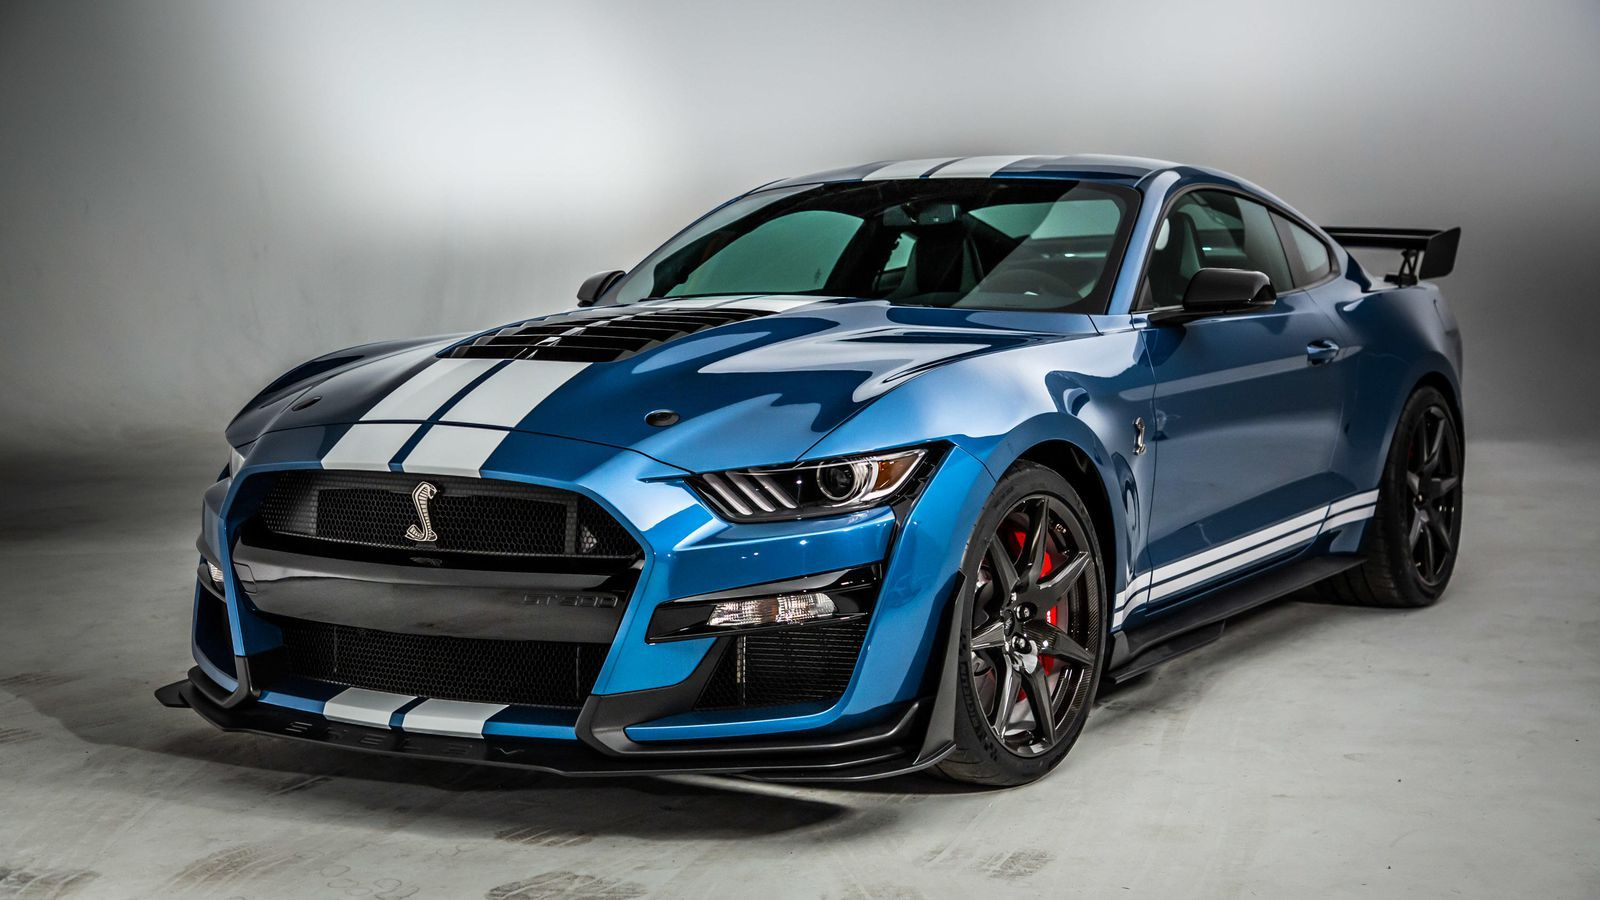 Ford Mustang Shelby gt500 760hp 2020 2019